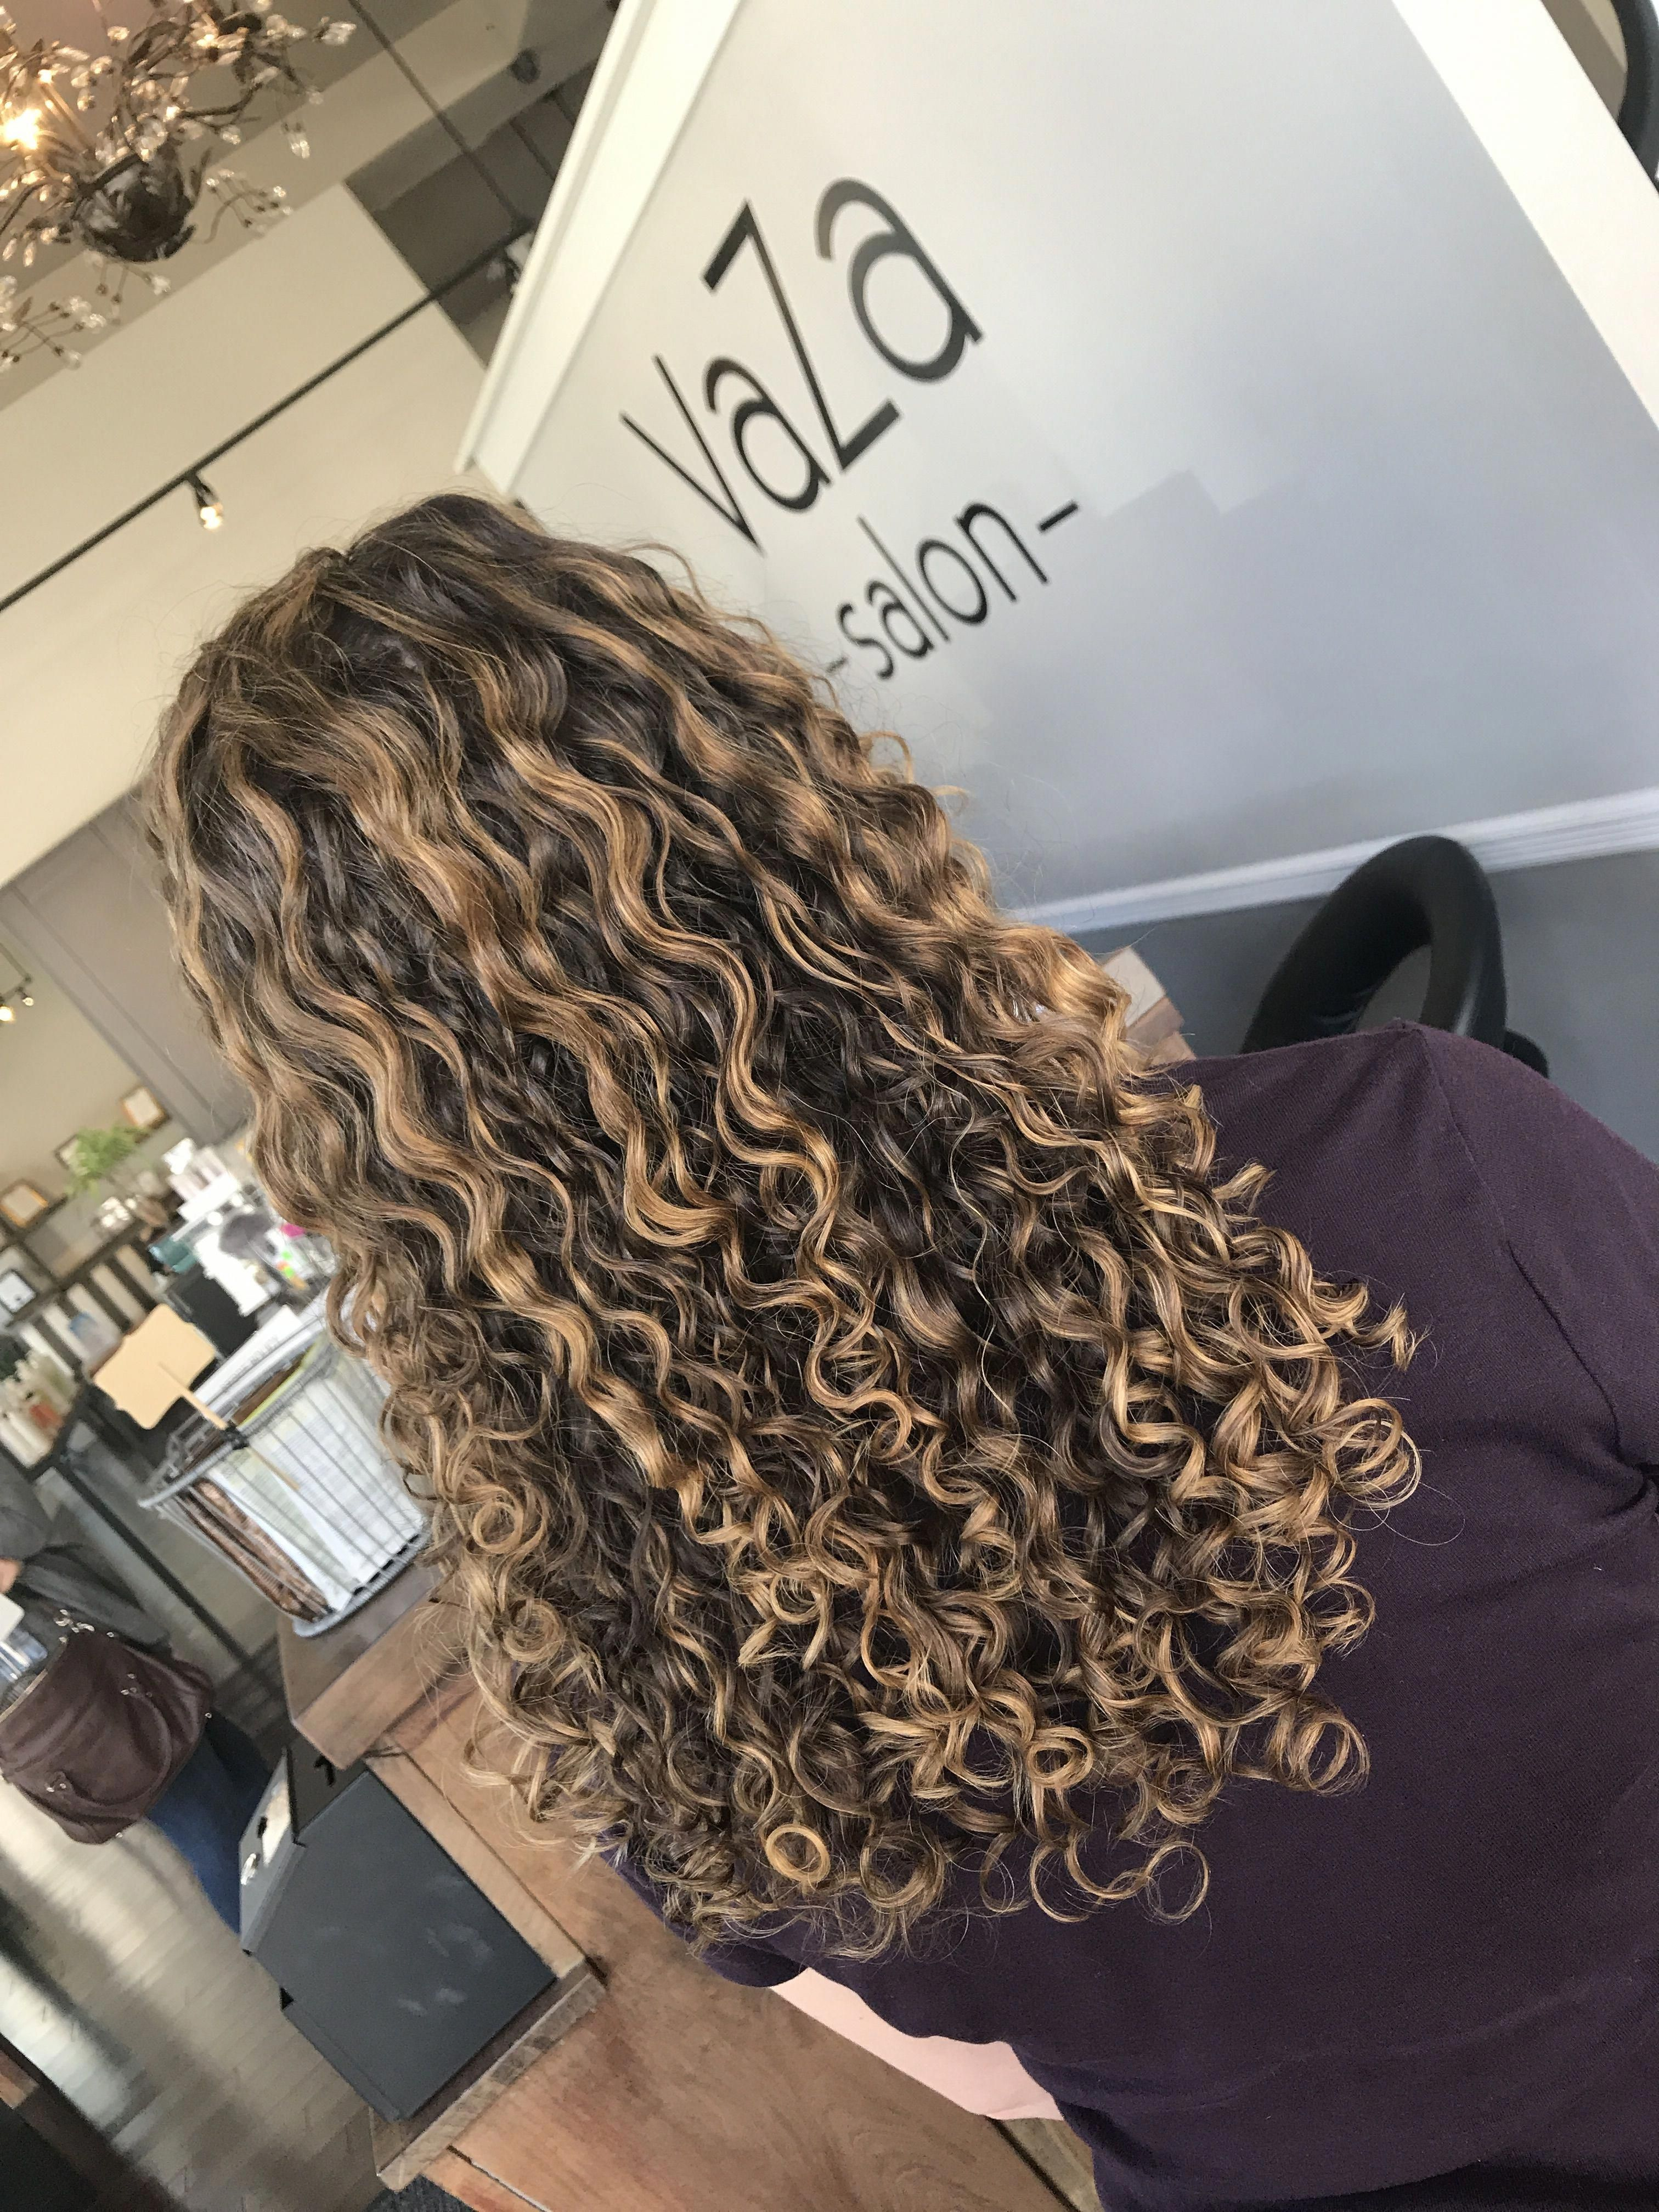 Ombrecurlyhair Curly Hair Styles Colored Curly Hair Dyed Curly Hair